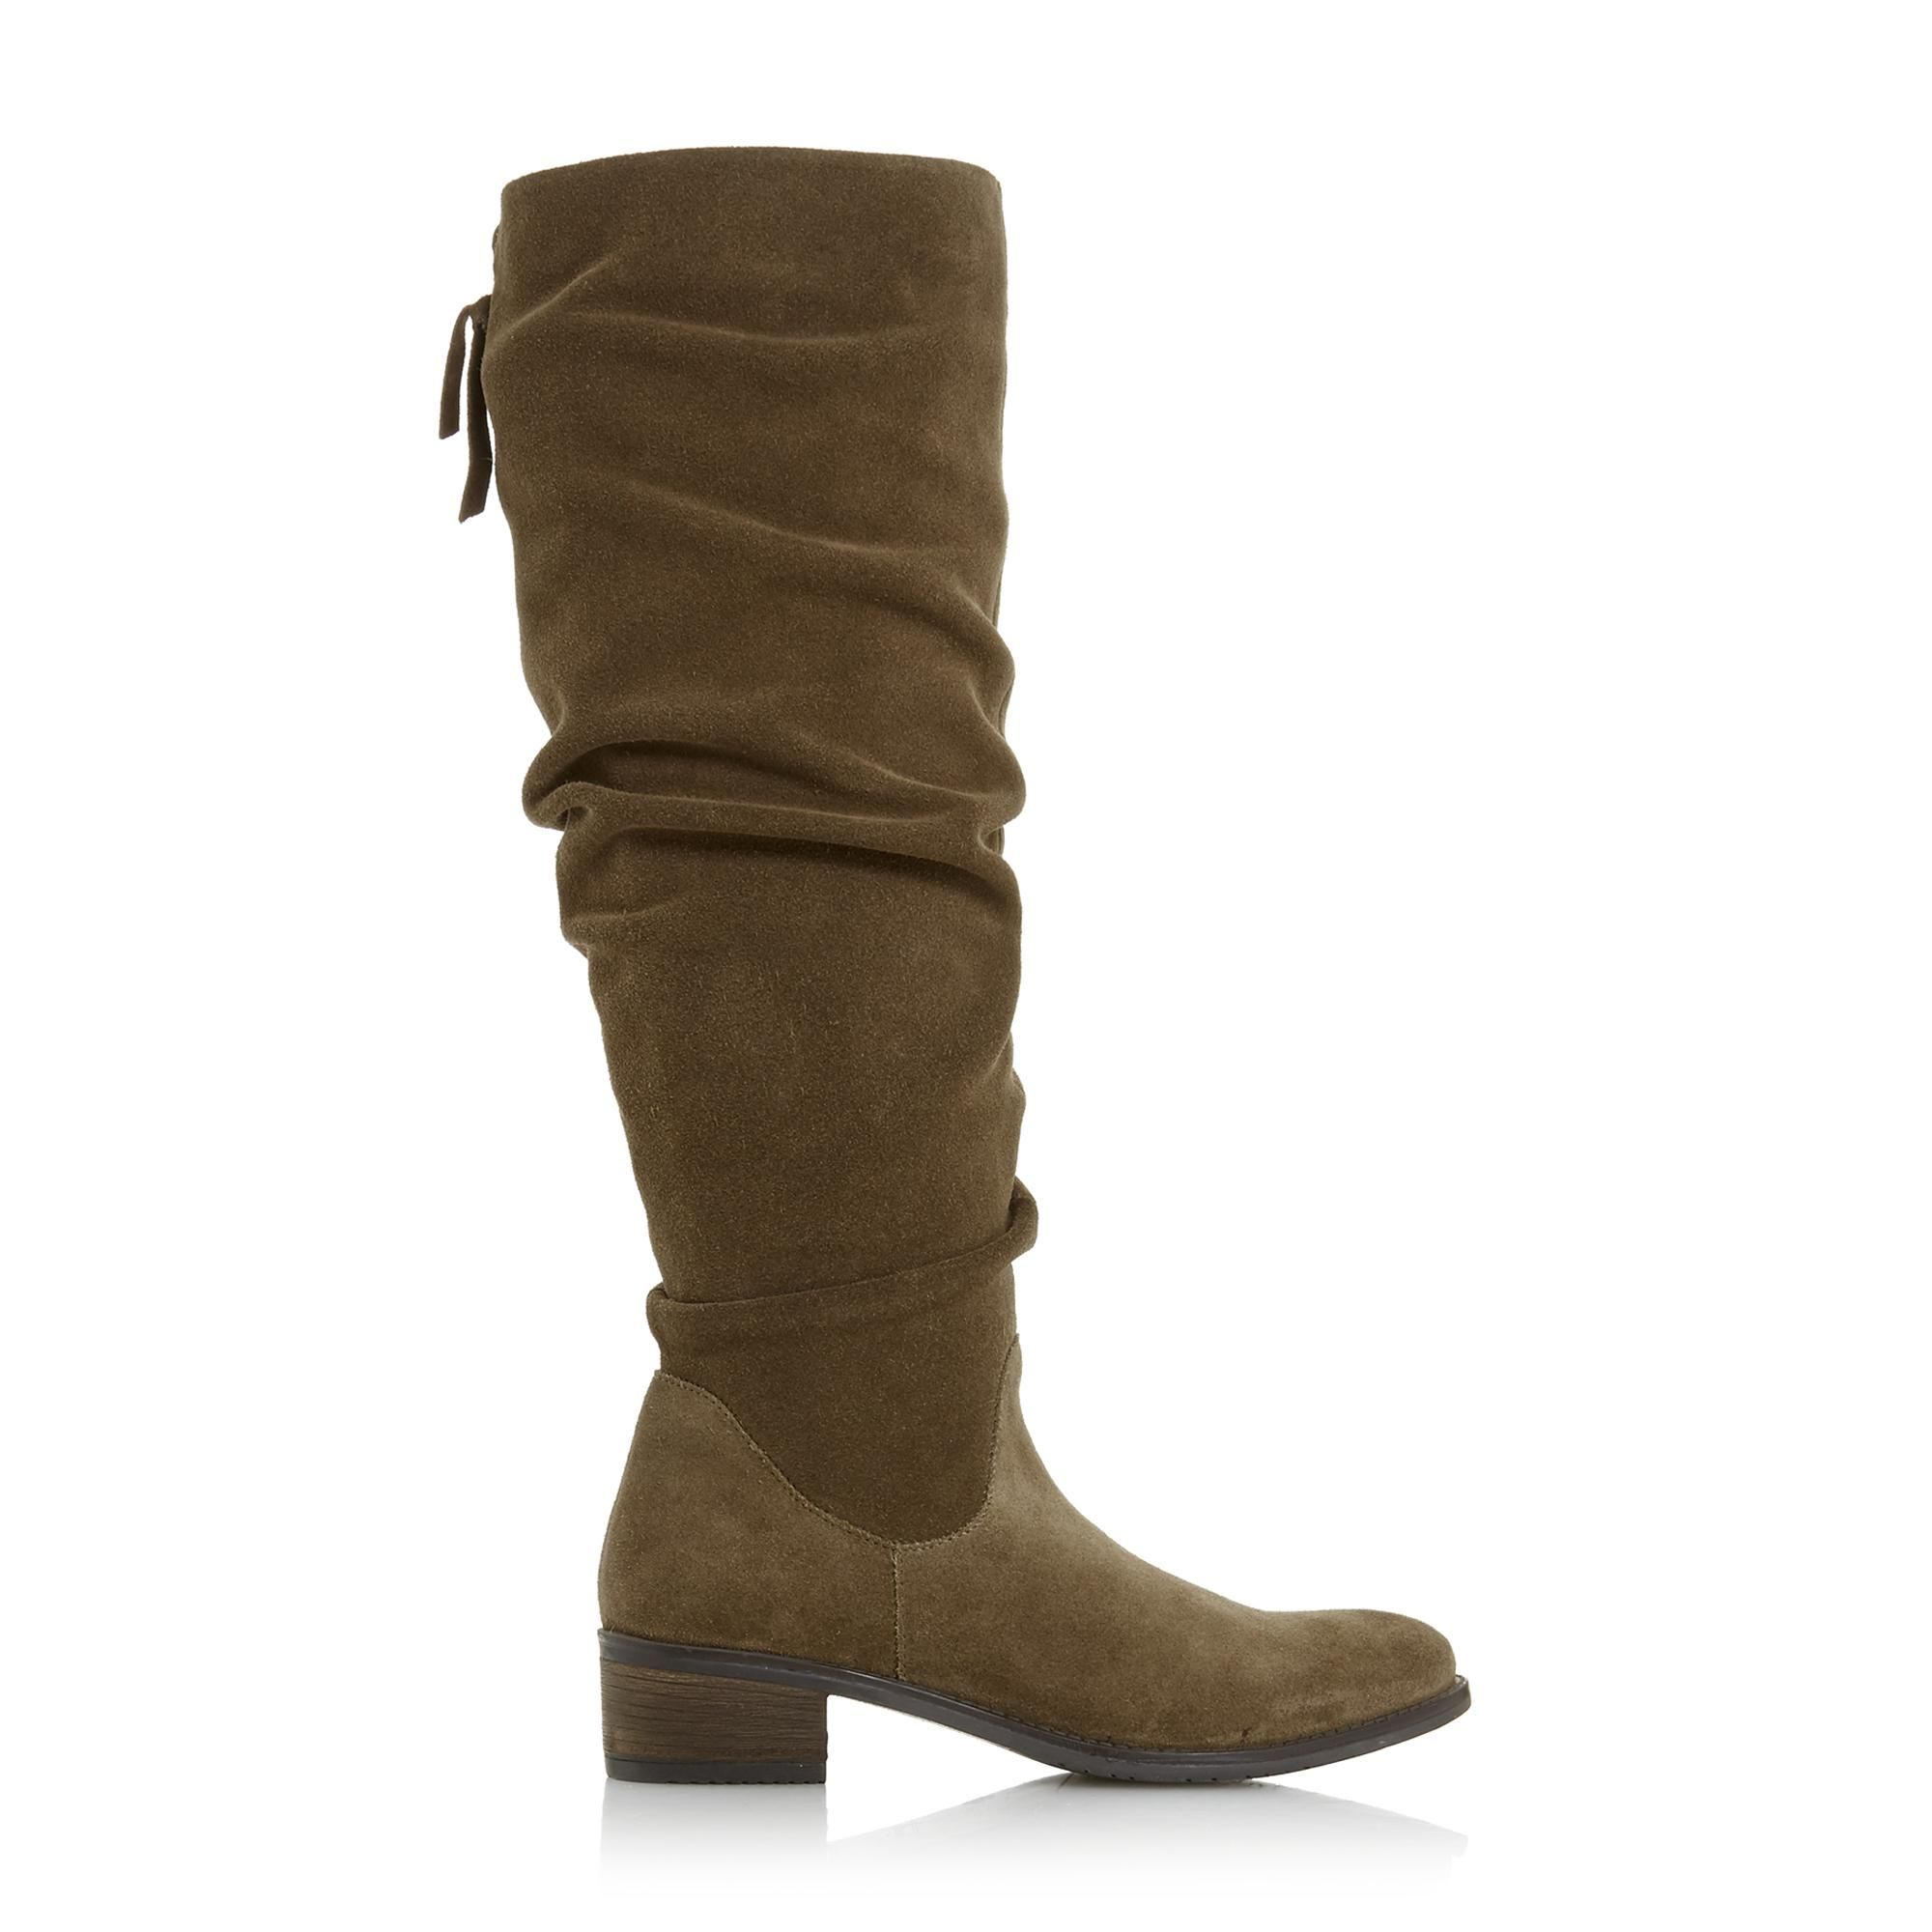 Dune Ladies TABATHA Ruched Flat Knee High Boots